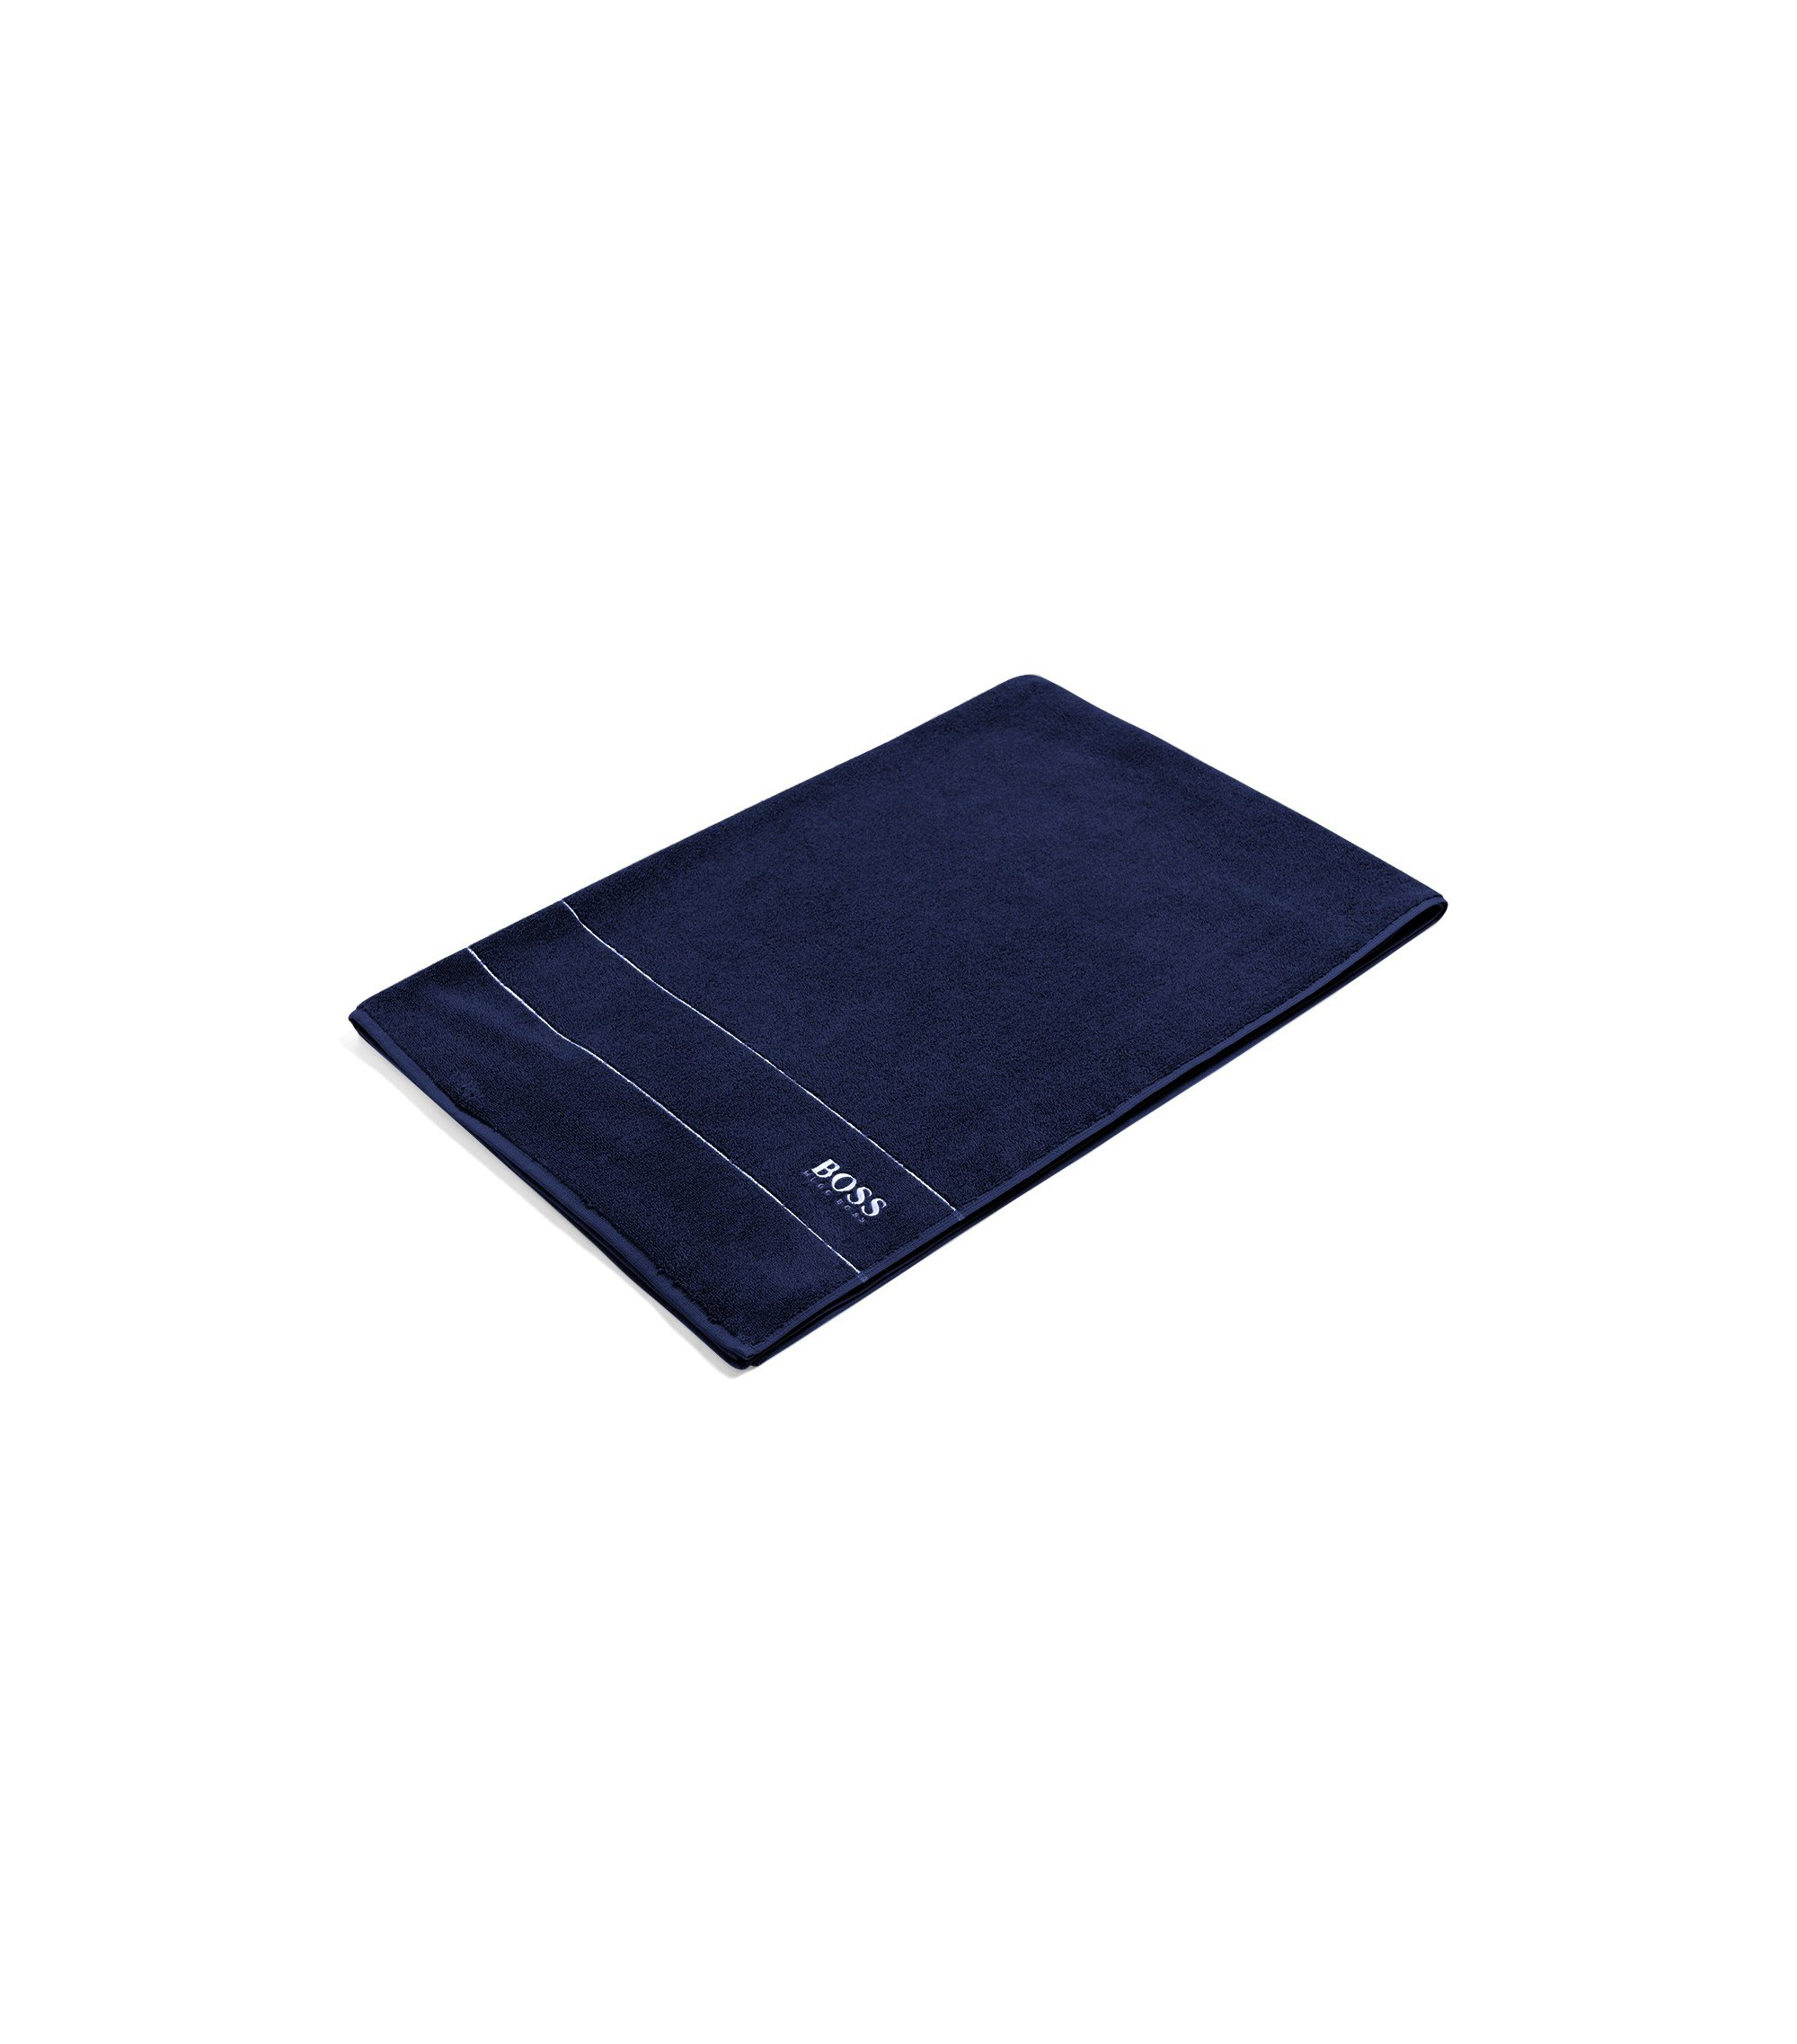 Finest Egyptian cotton bath sheet with logo border, Dark Blue